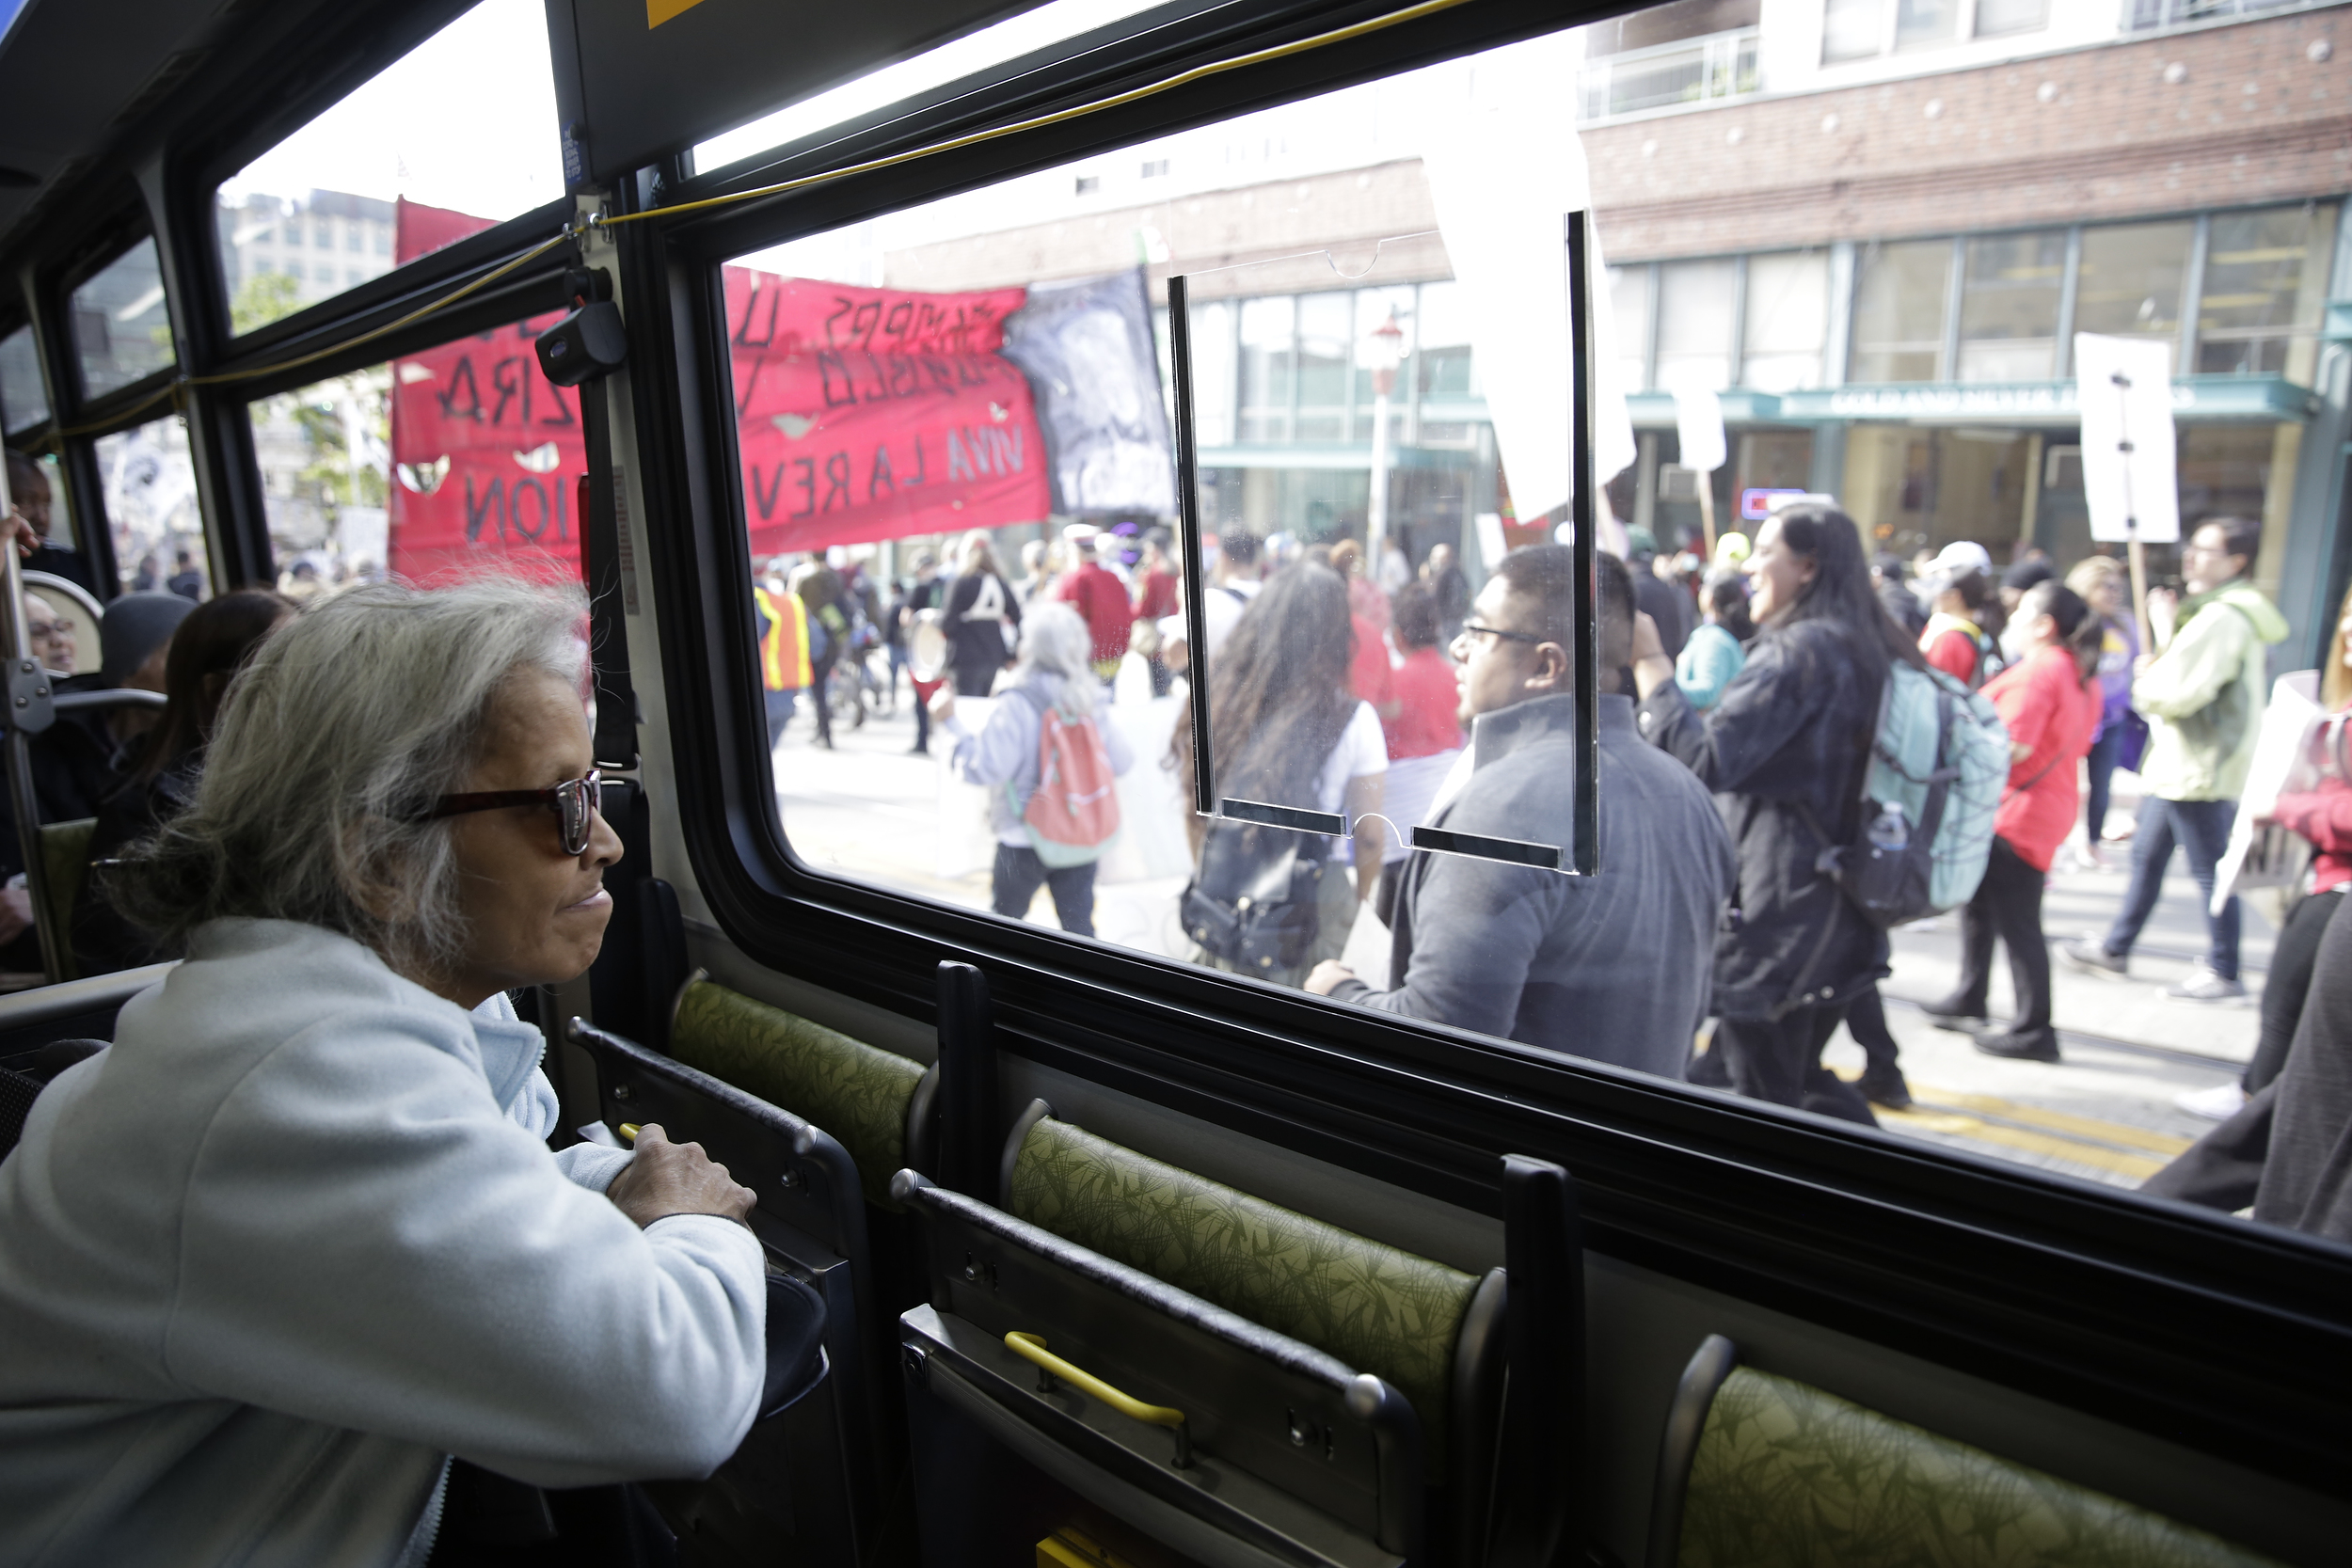 Darlene Hadley of Seattle watches from a bus stuck in traffic on South Jackson Street in the International District during the annual May Day March for Workers and Immigrant Rights in Seattle